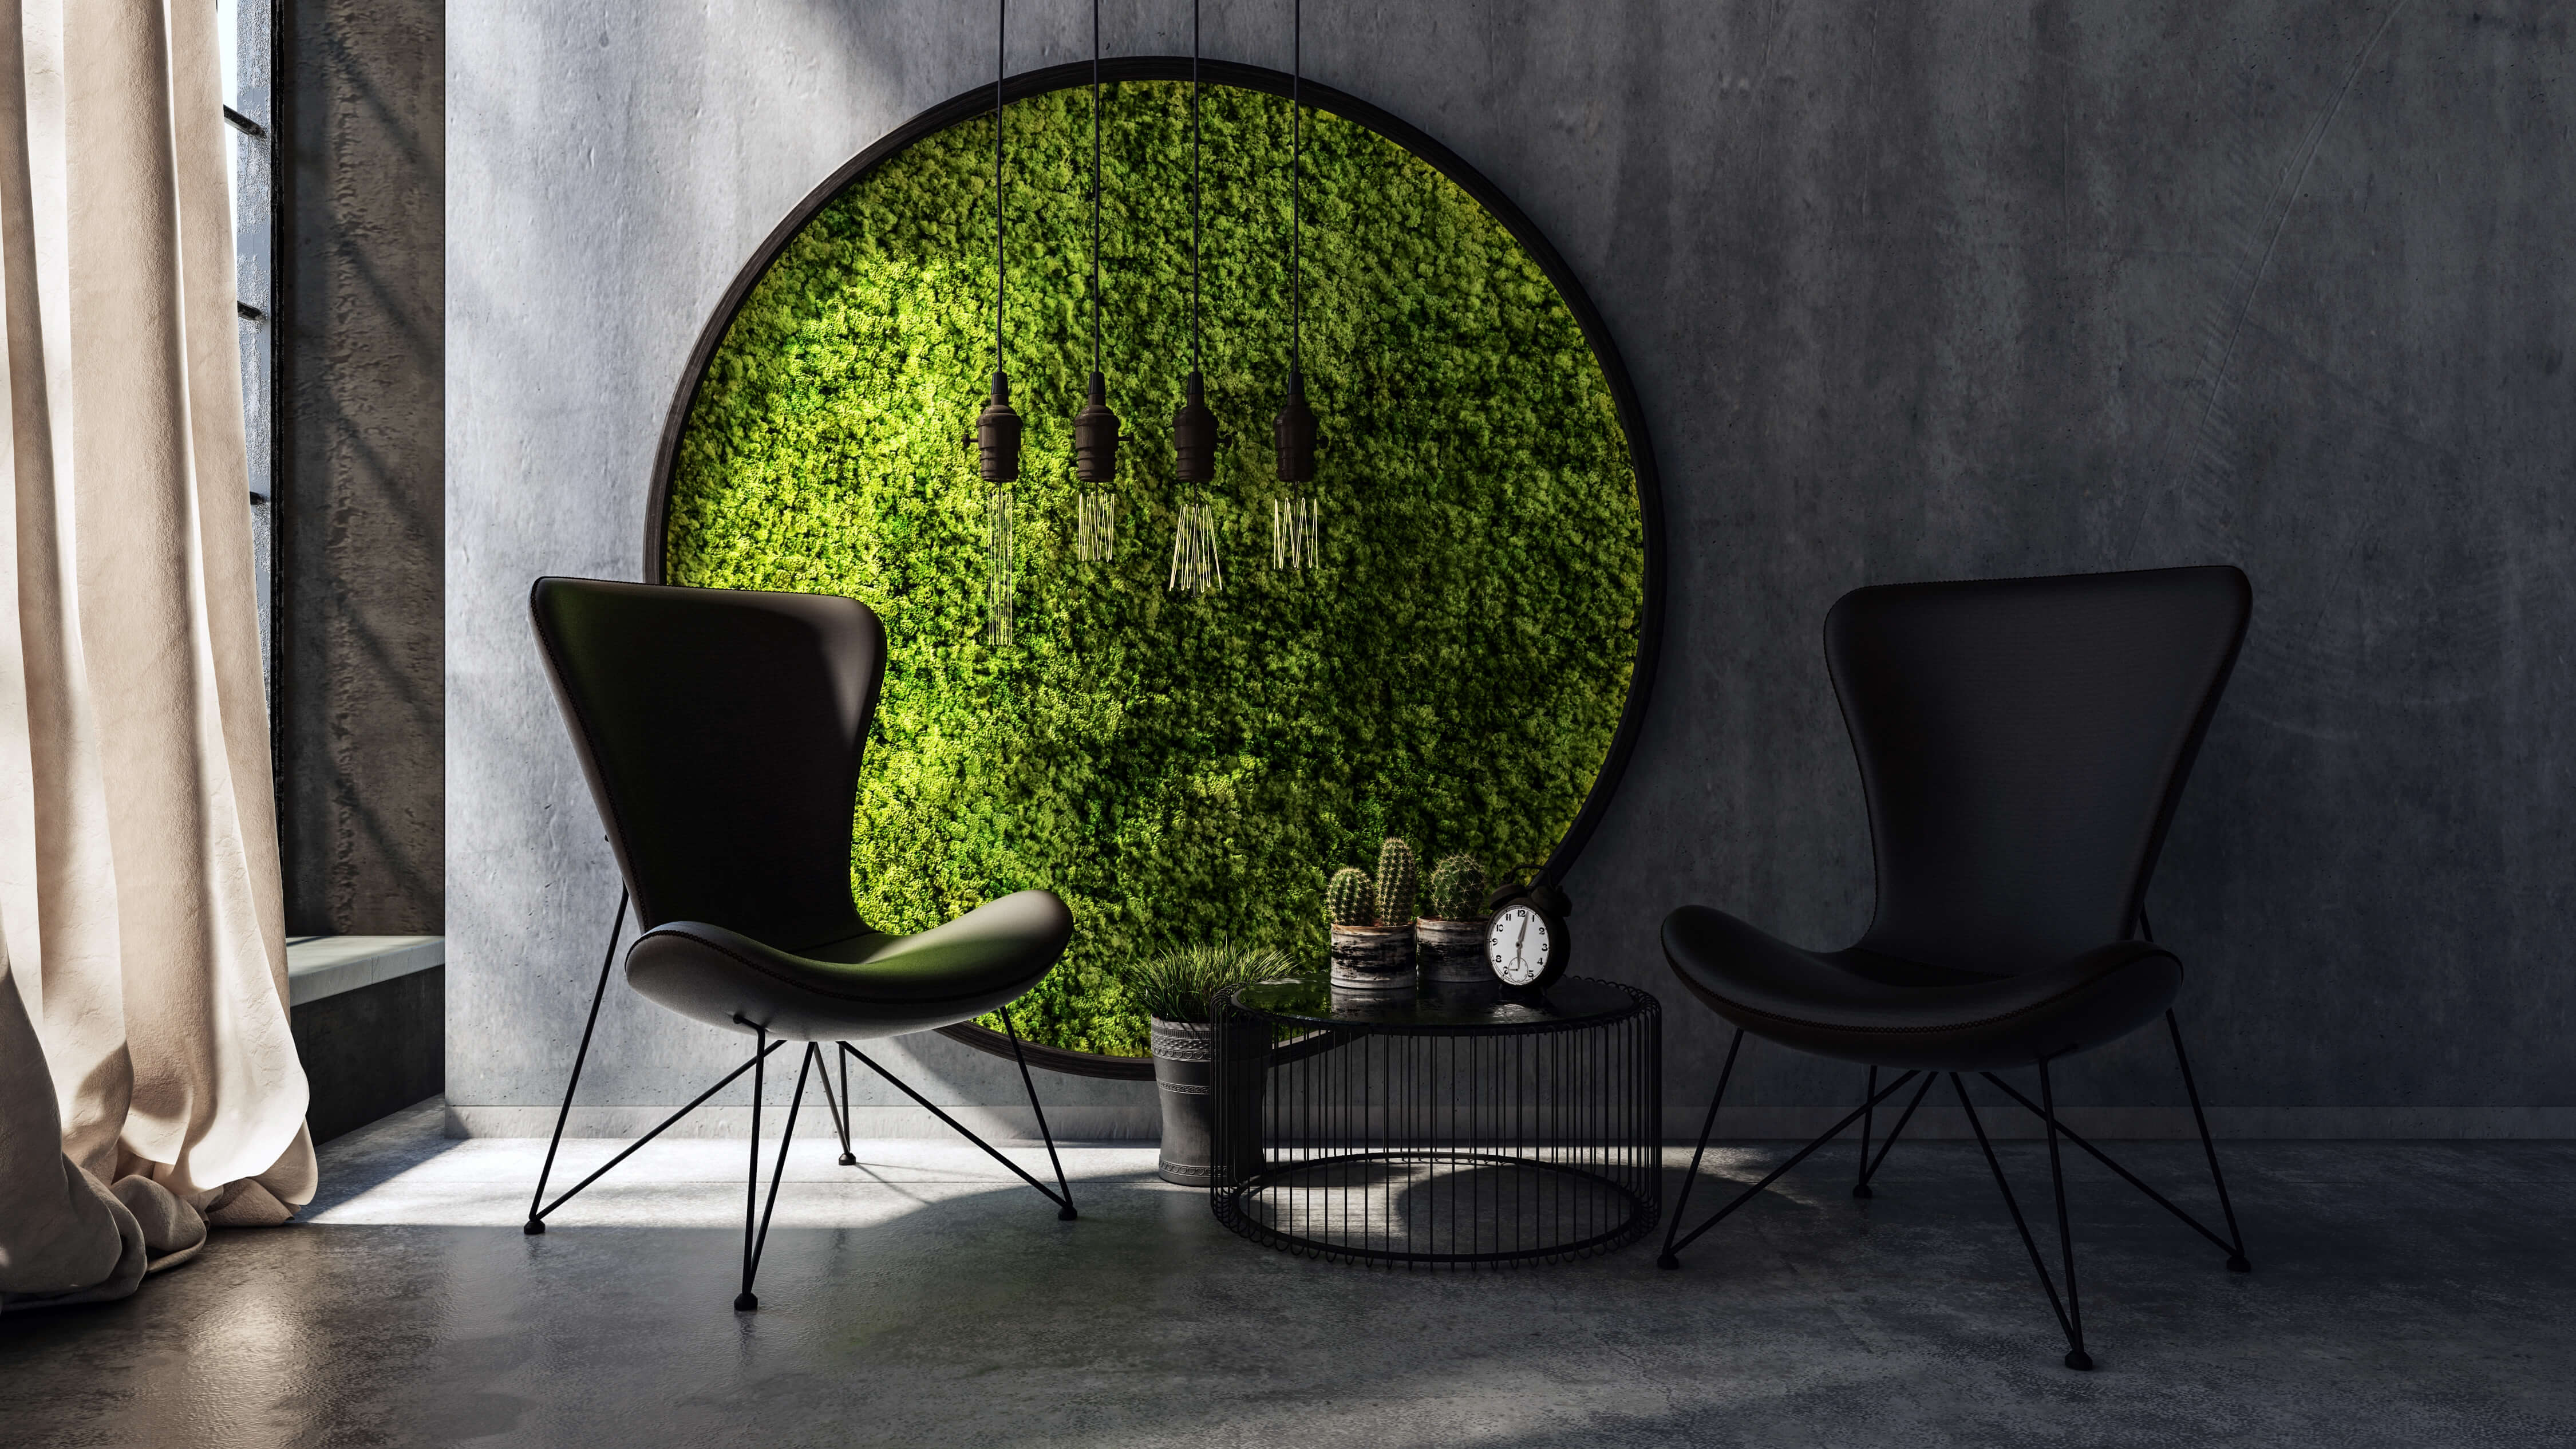 25 steps to create a diy moss wall garden. Black Bedroom Furniture Sets. Home Design Ideas